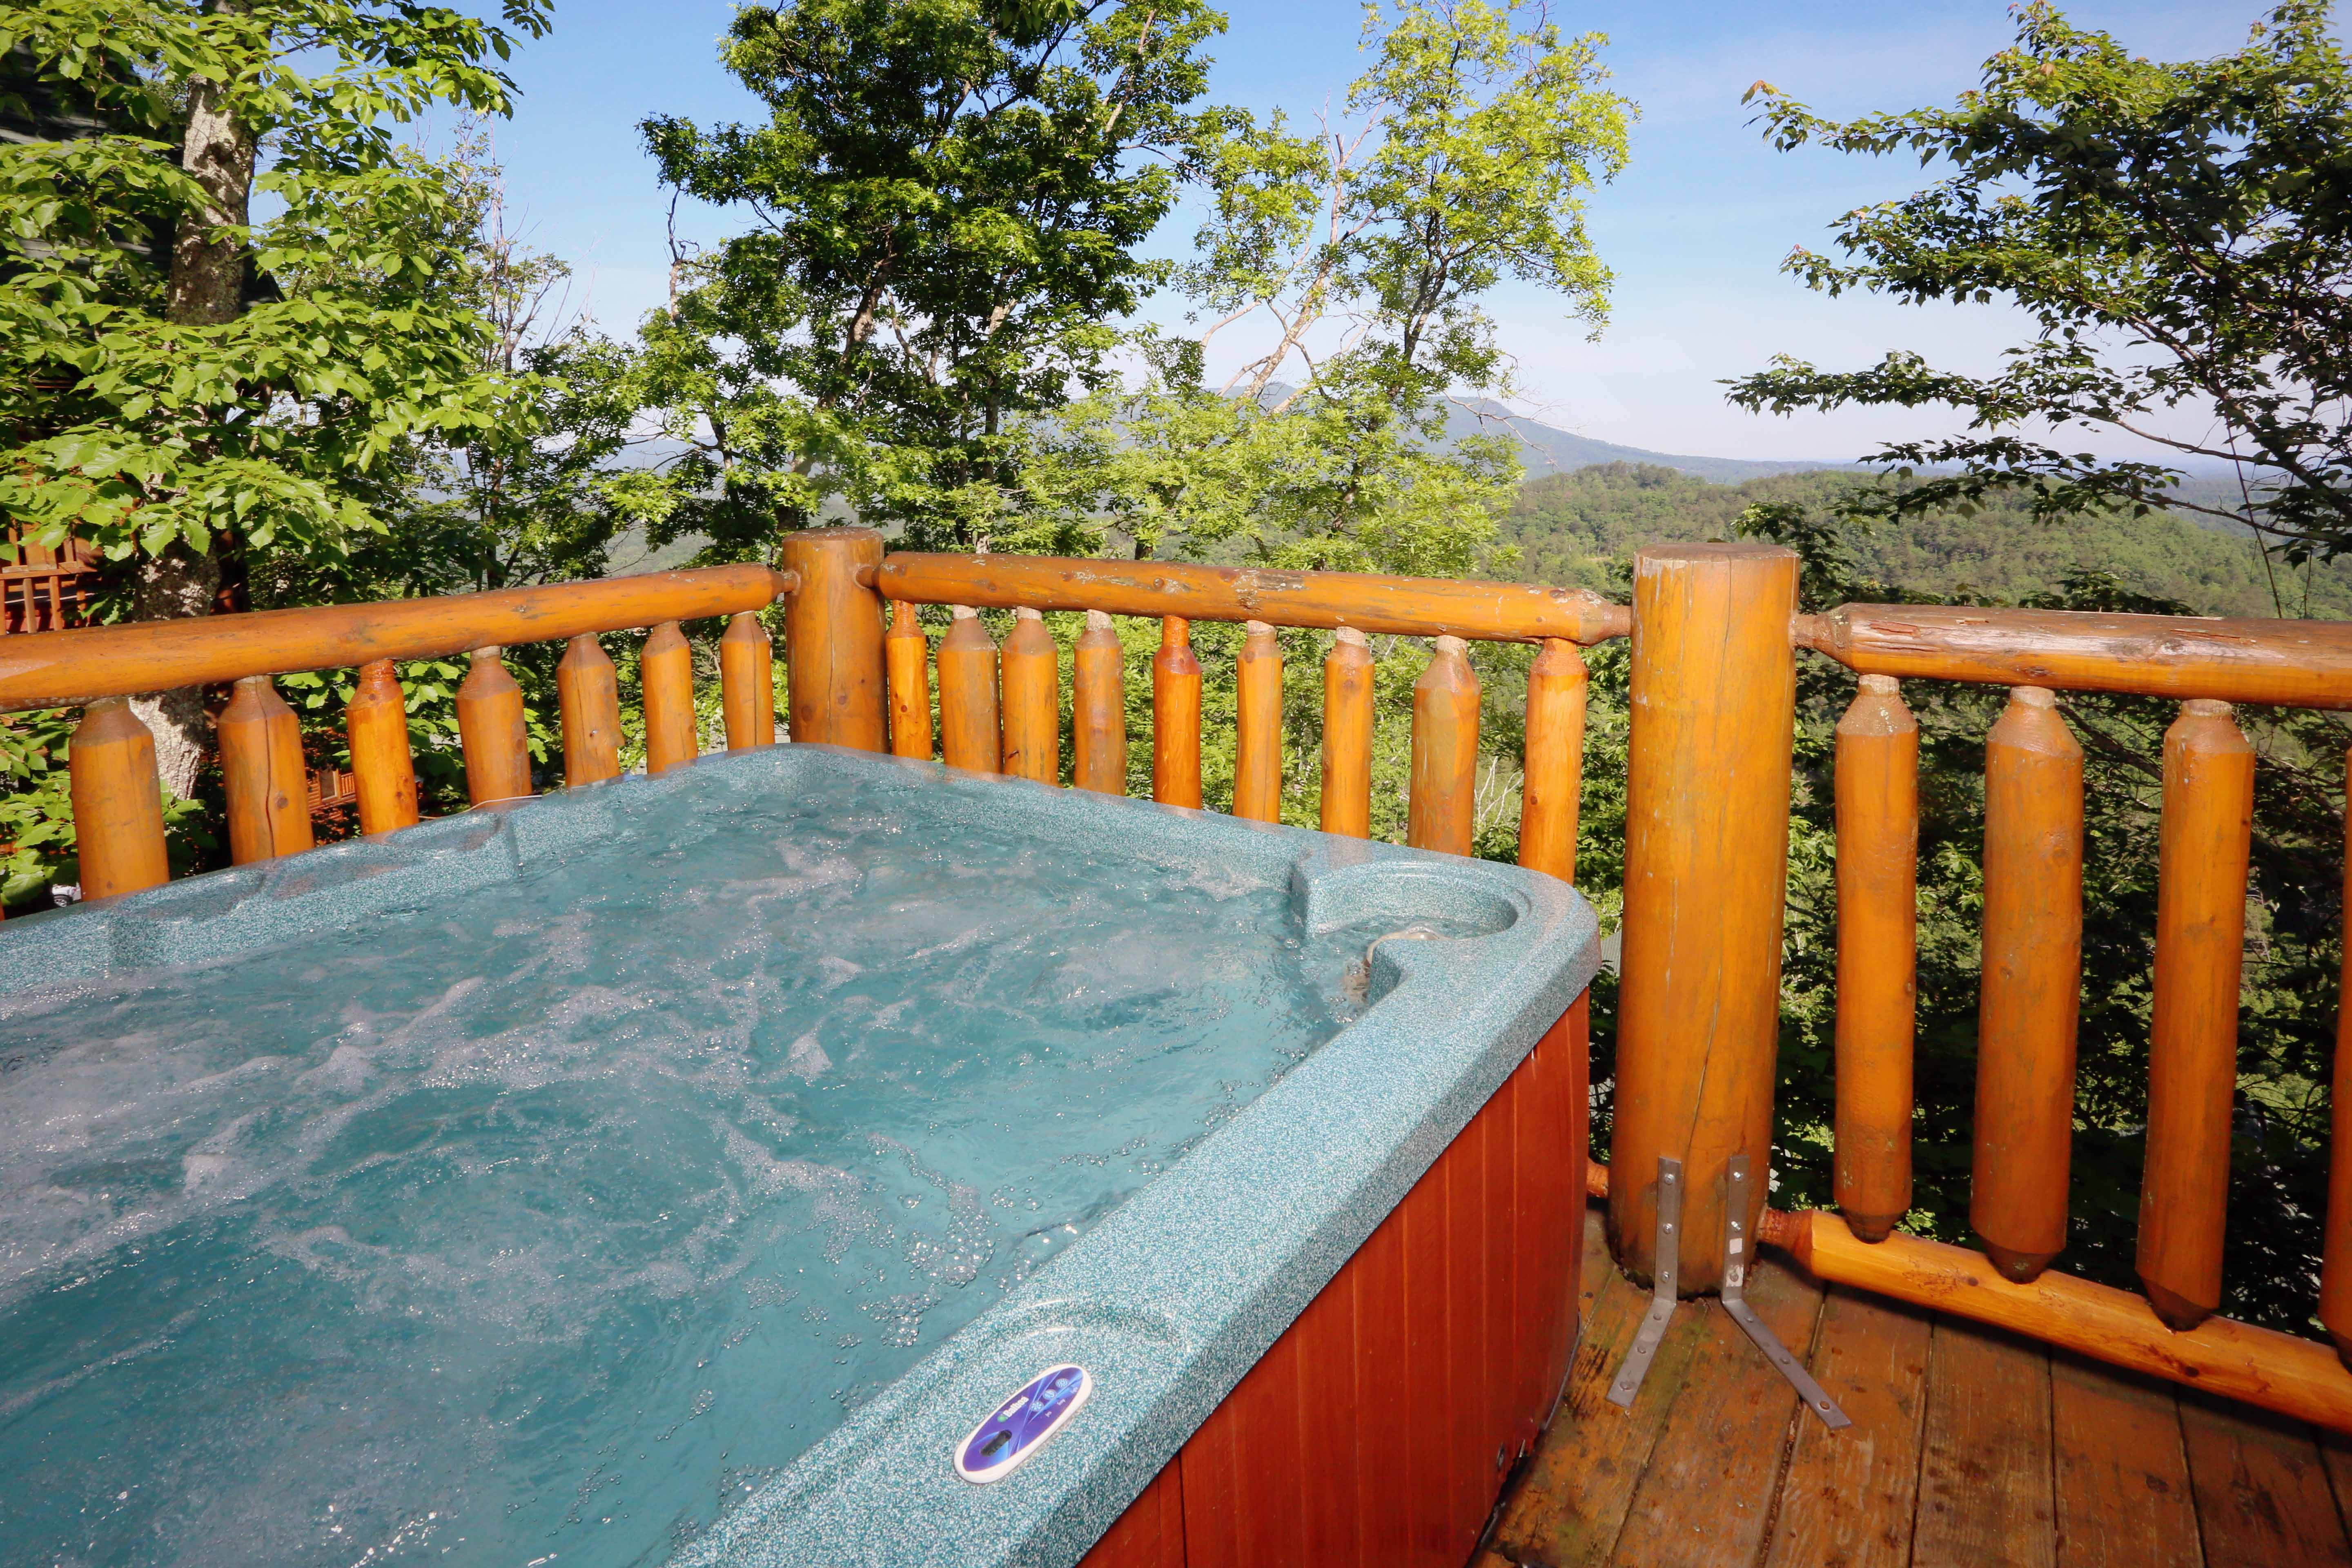 heaven with rentals north cabins in curtain gatlinburg carolina bear hottub smoky mountain honey sleeps pigeon georgia tennessee pictures bedroom cinema for cabin forge tn jacuzzi pool large indoor